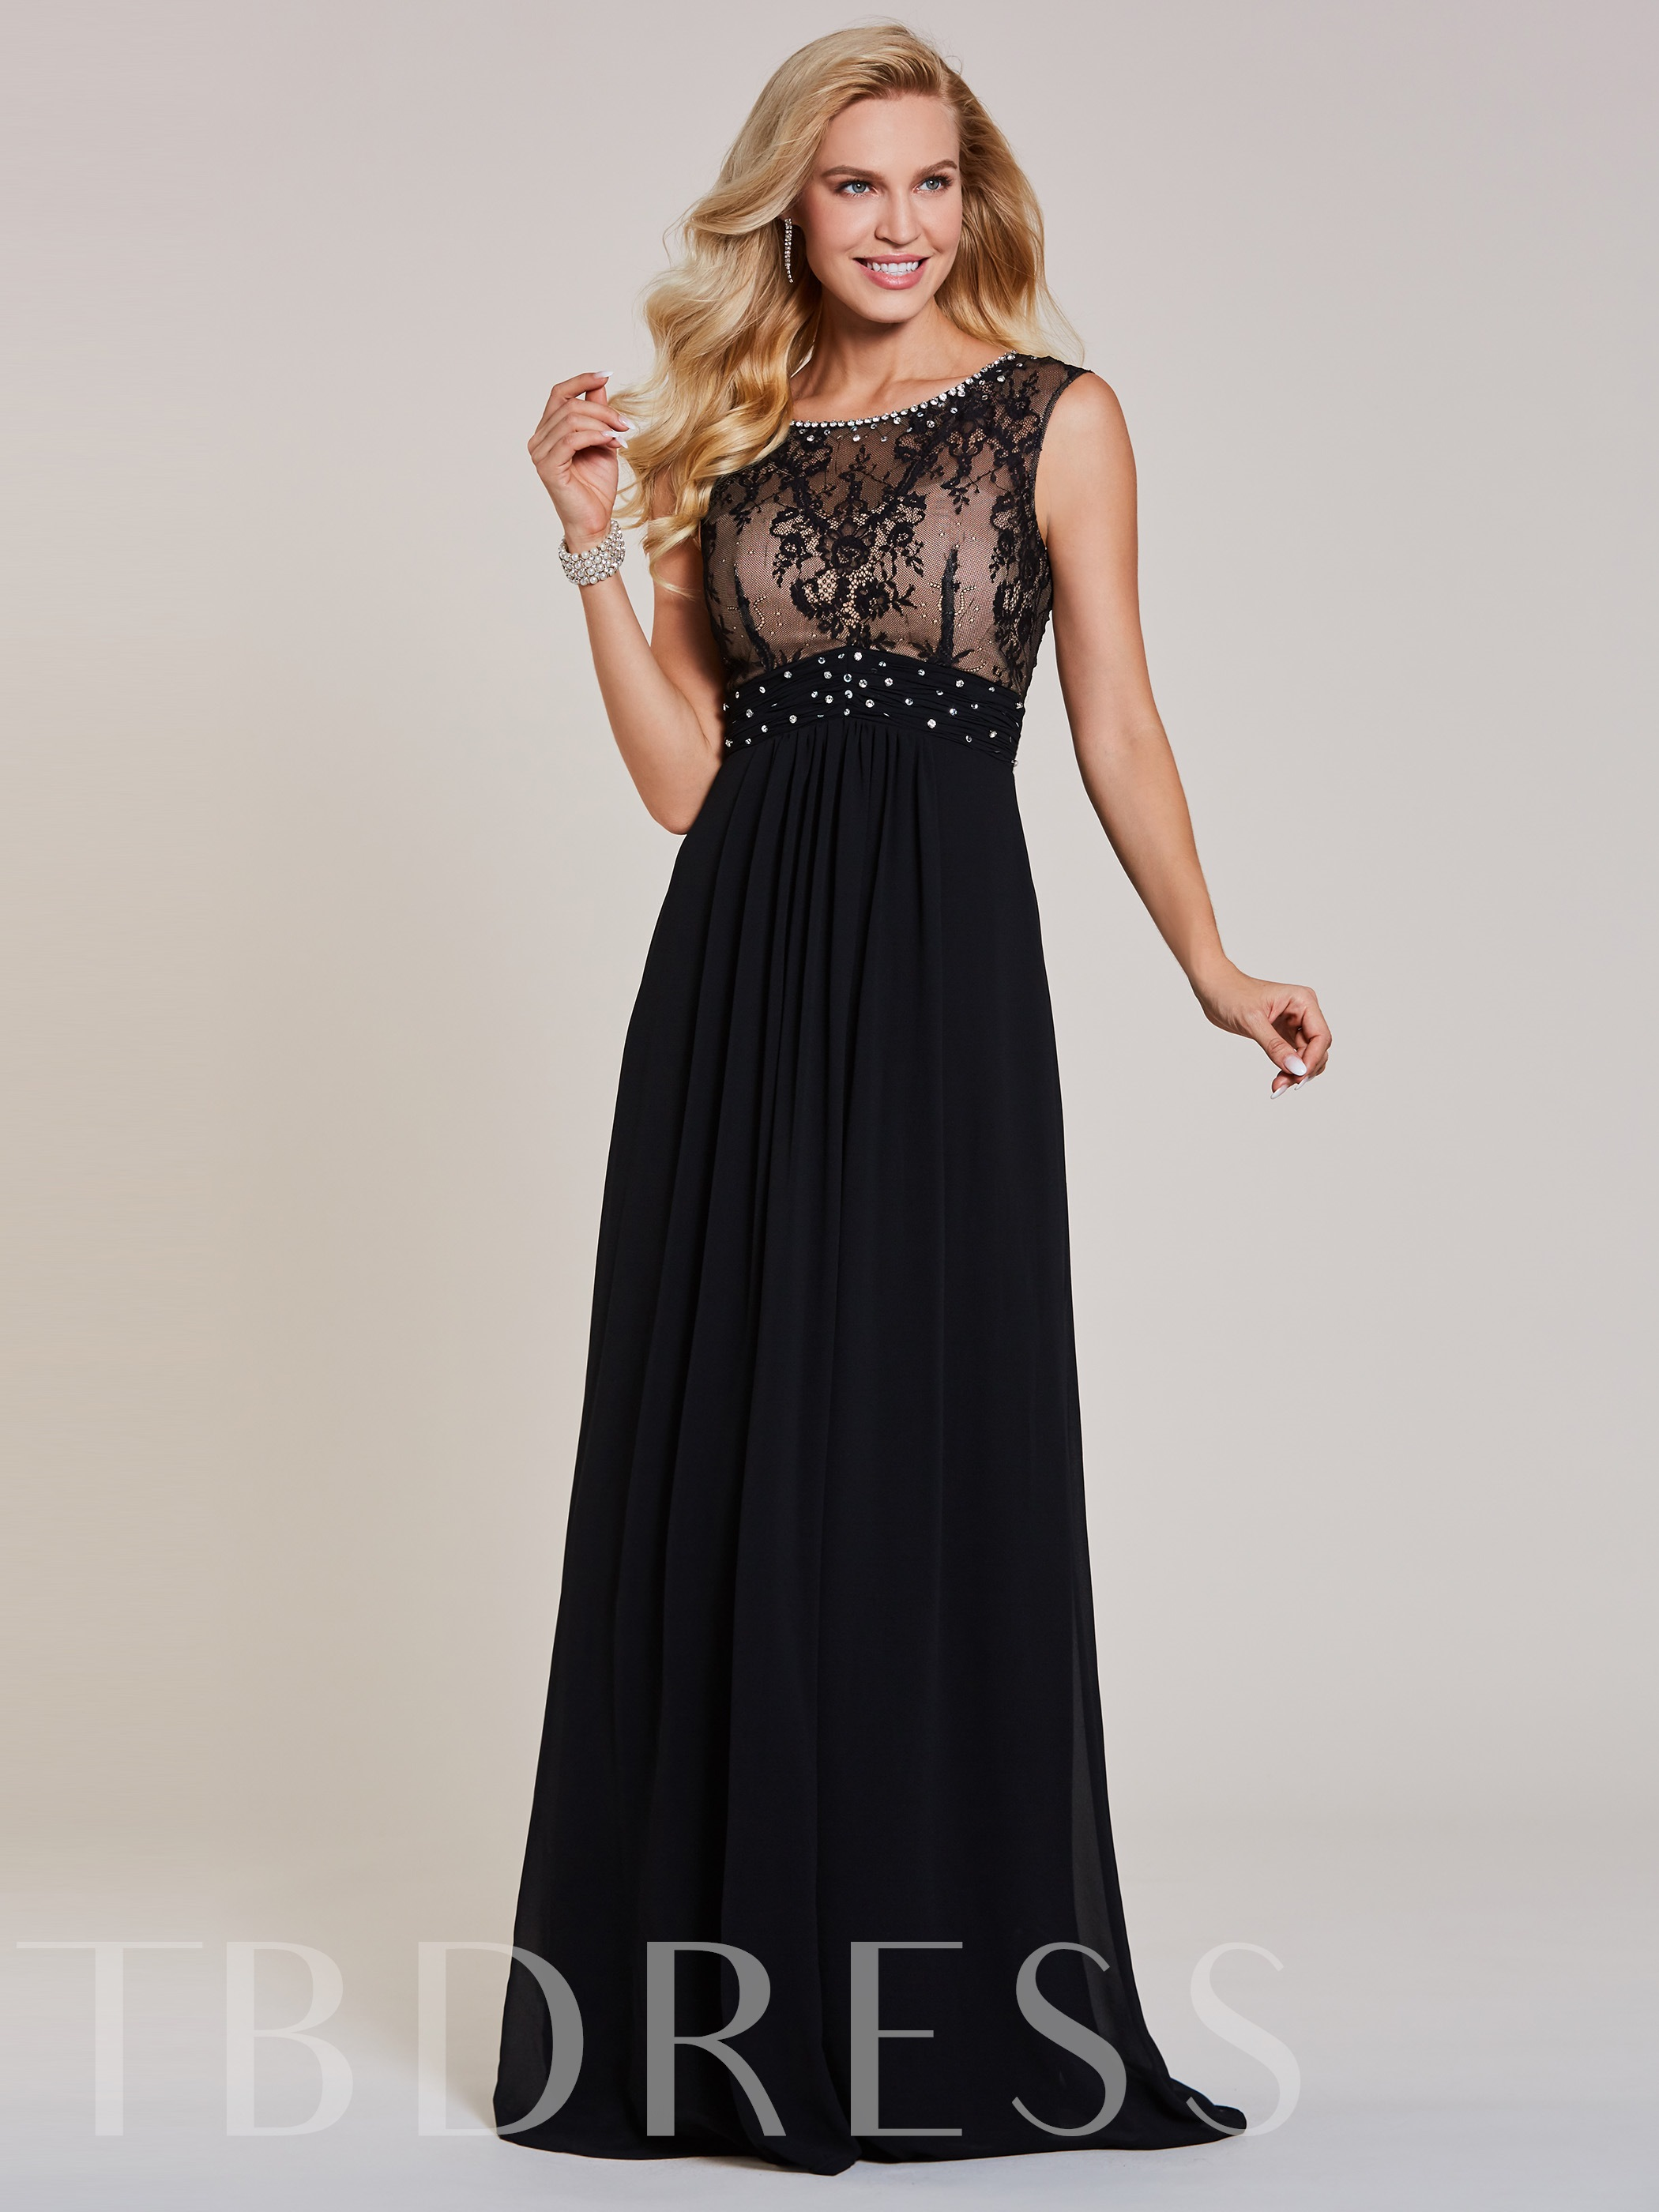 Buy Beaded Scoop Neck Lace Long Evening Dress, Tanpell, Spring,Summer,Fall,Winter, 13027085 for $57.32 in TBDress store